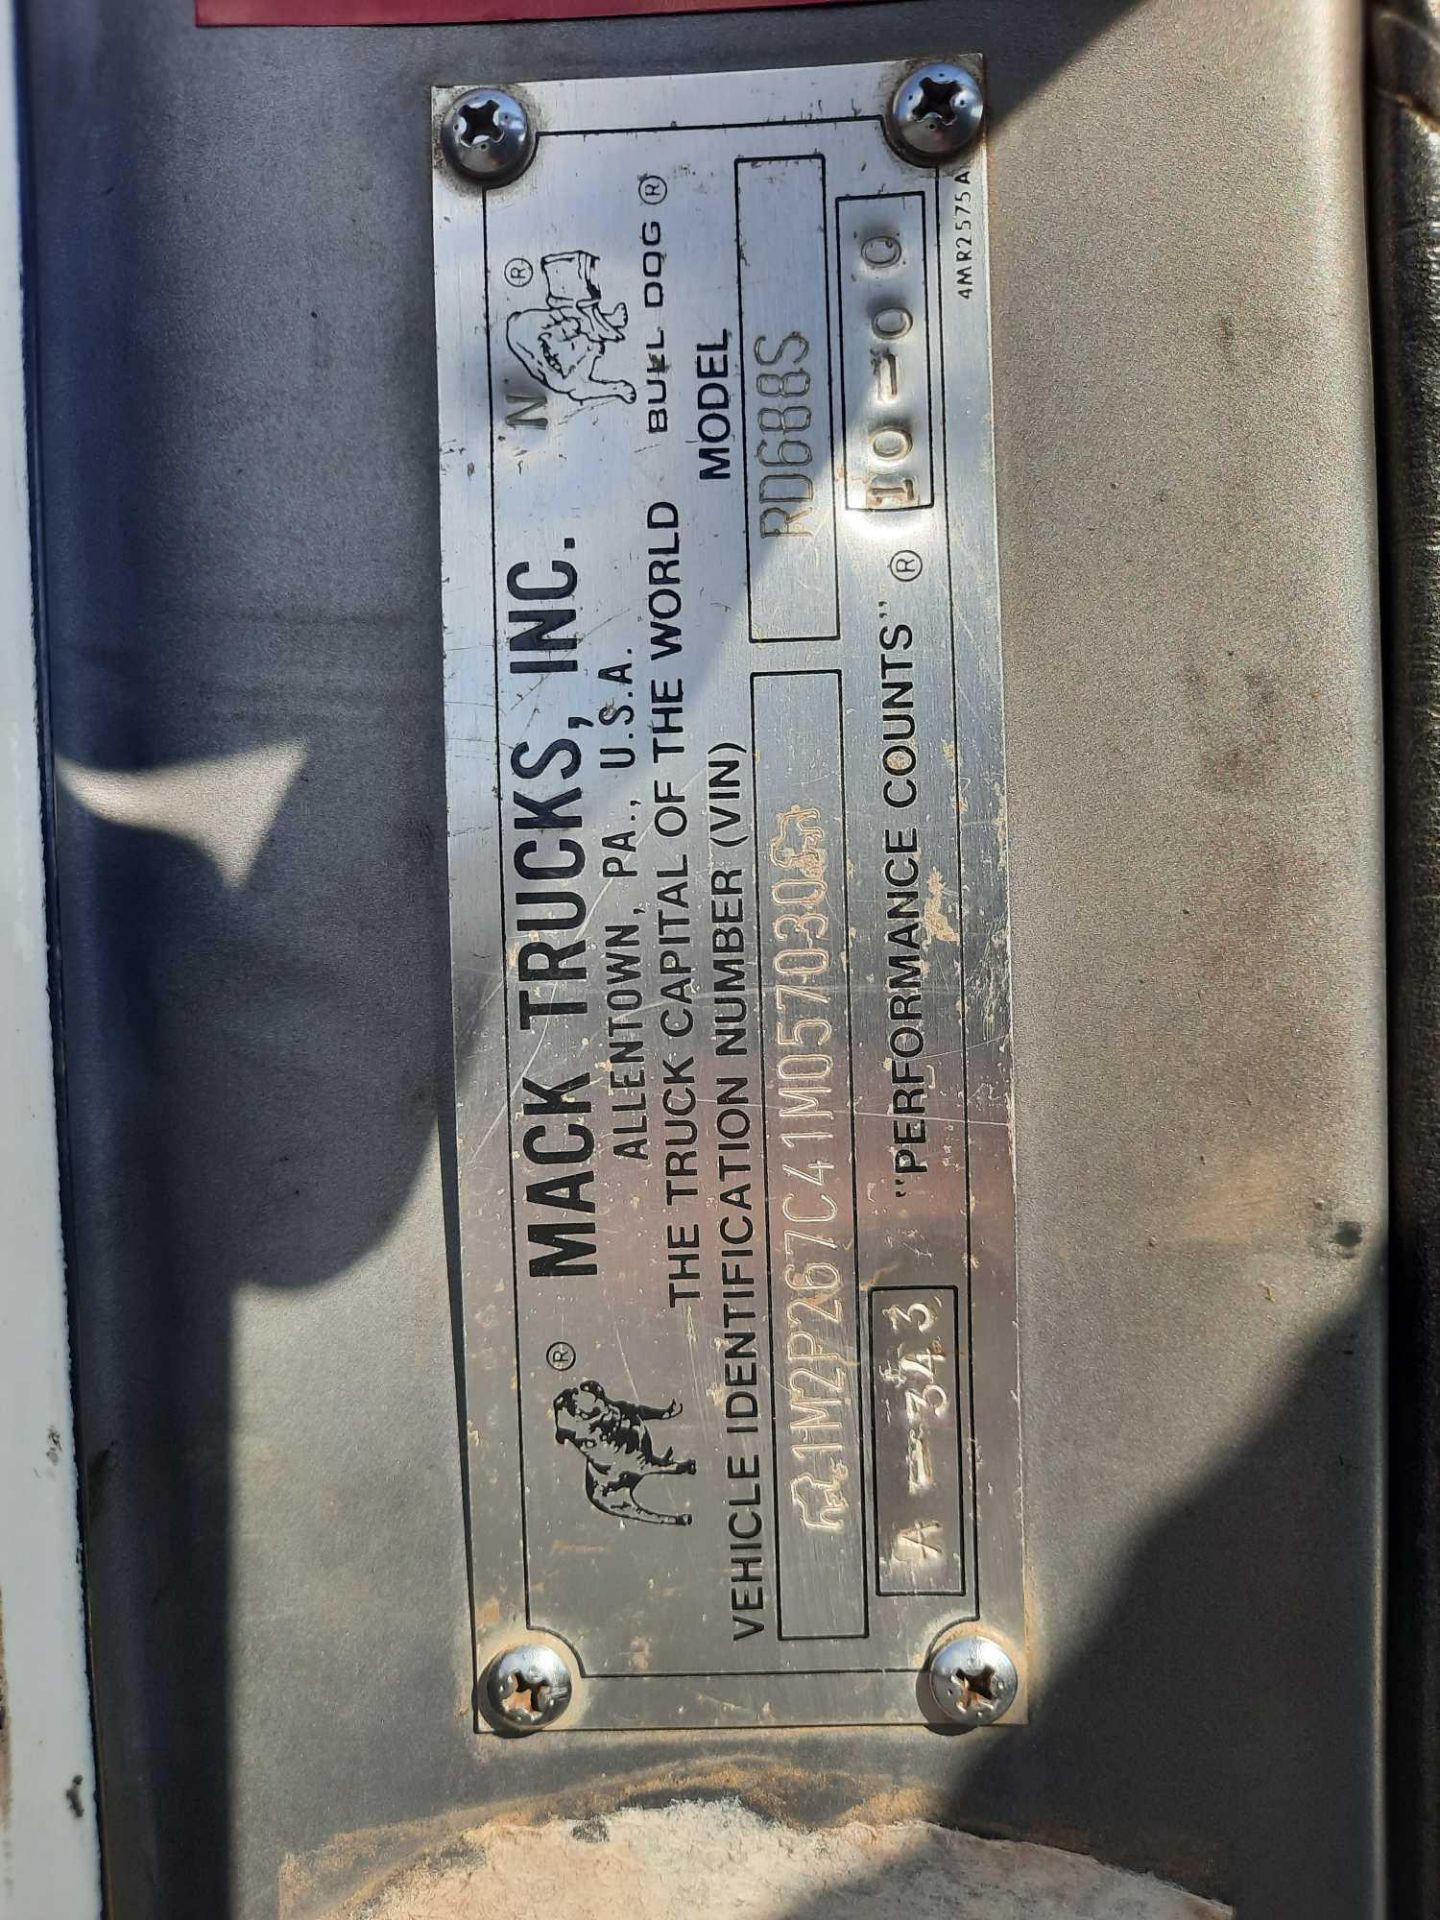 2001 MACK TRI/A ROLL OFF TRUCK - Image 11 of 23